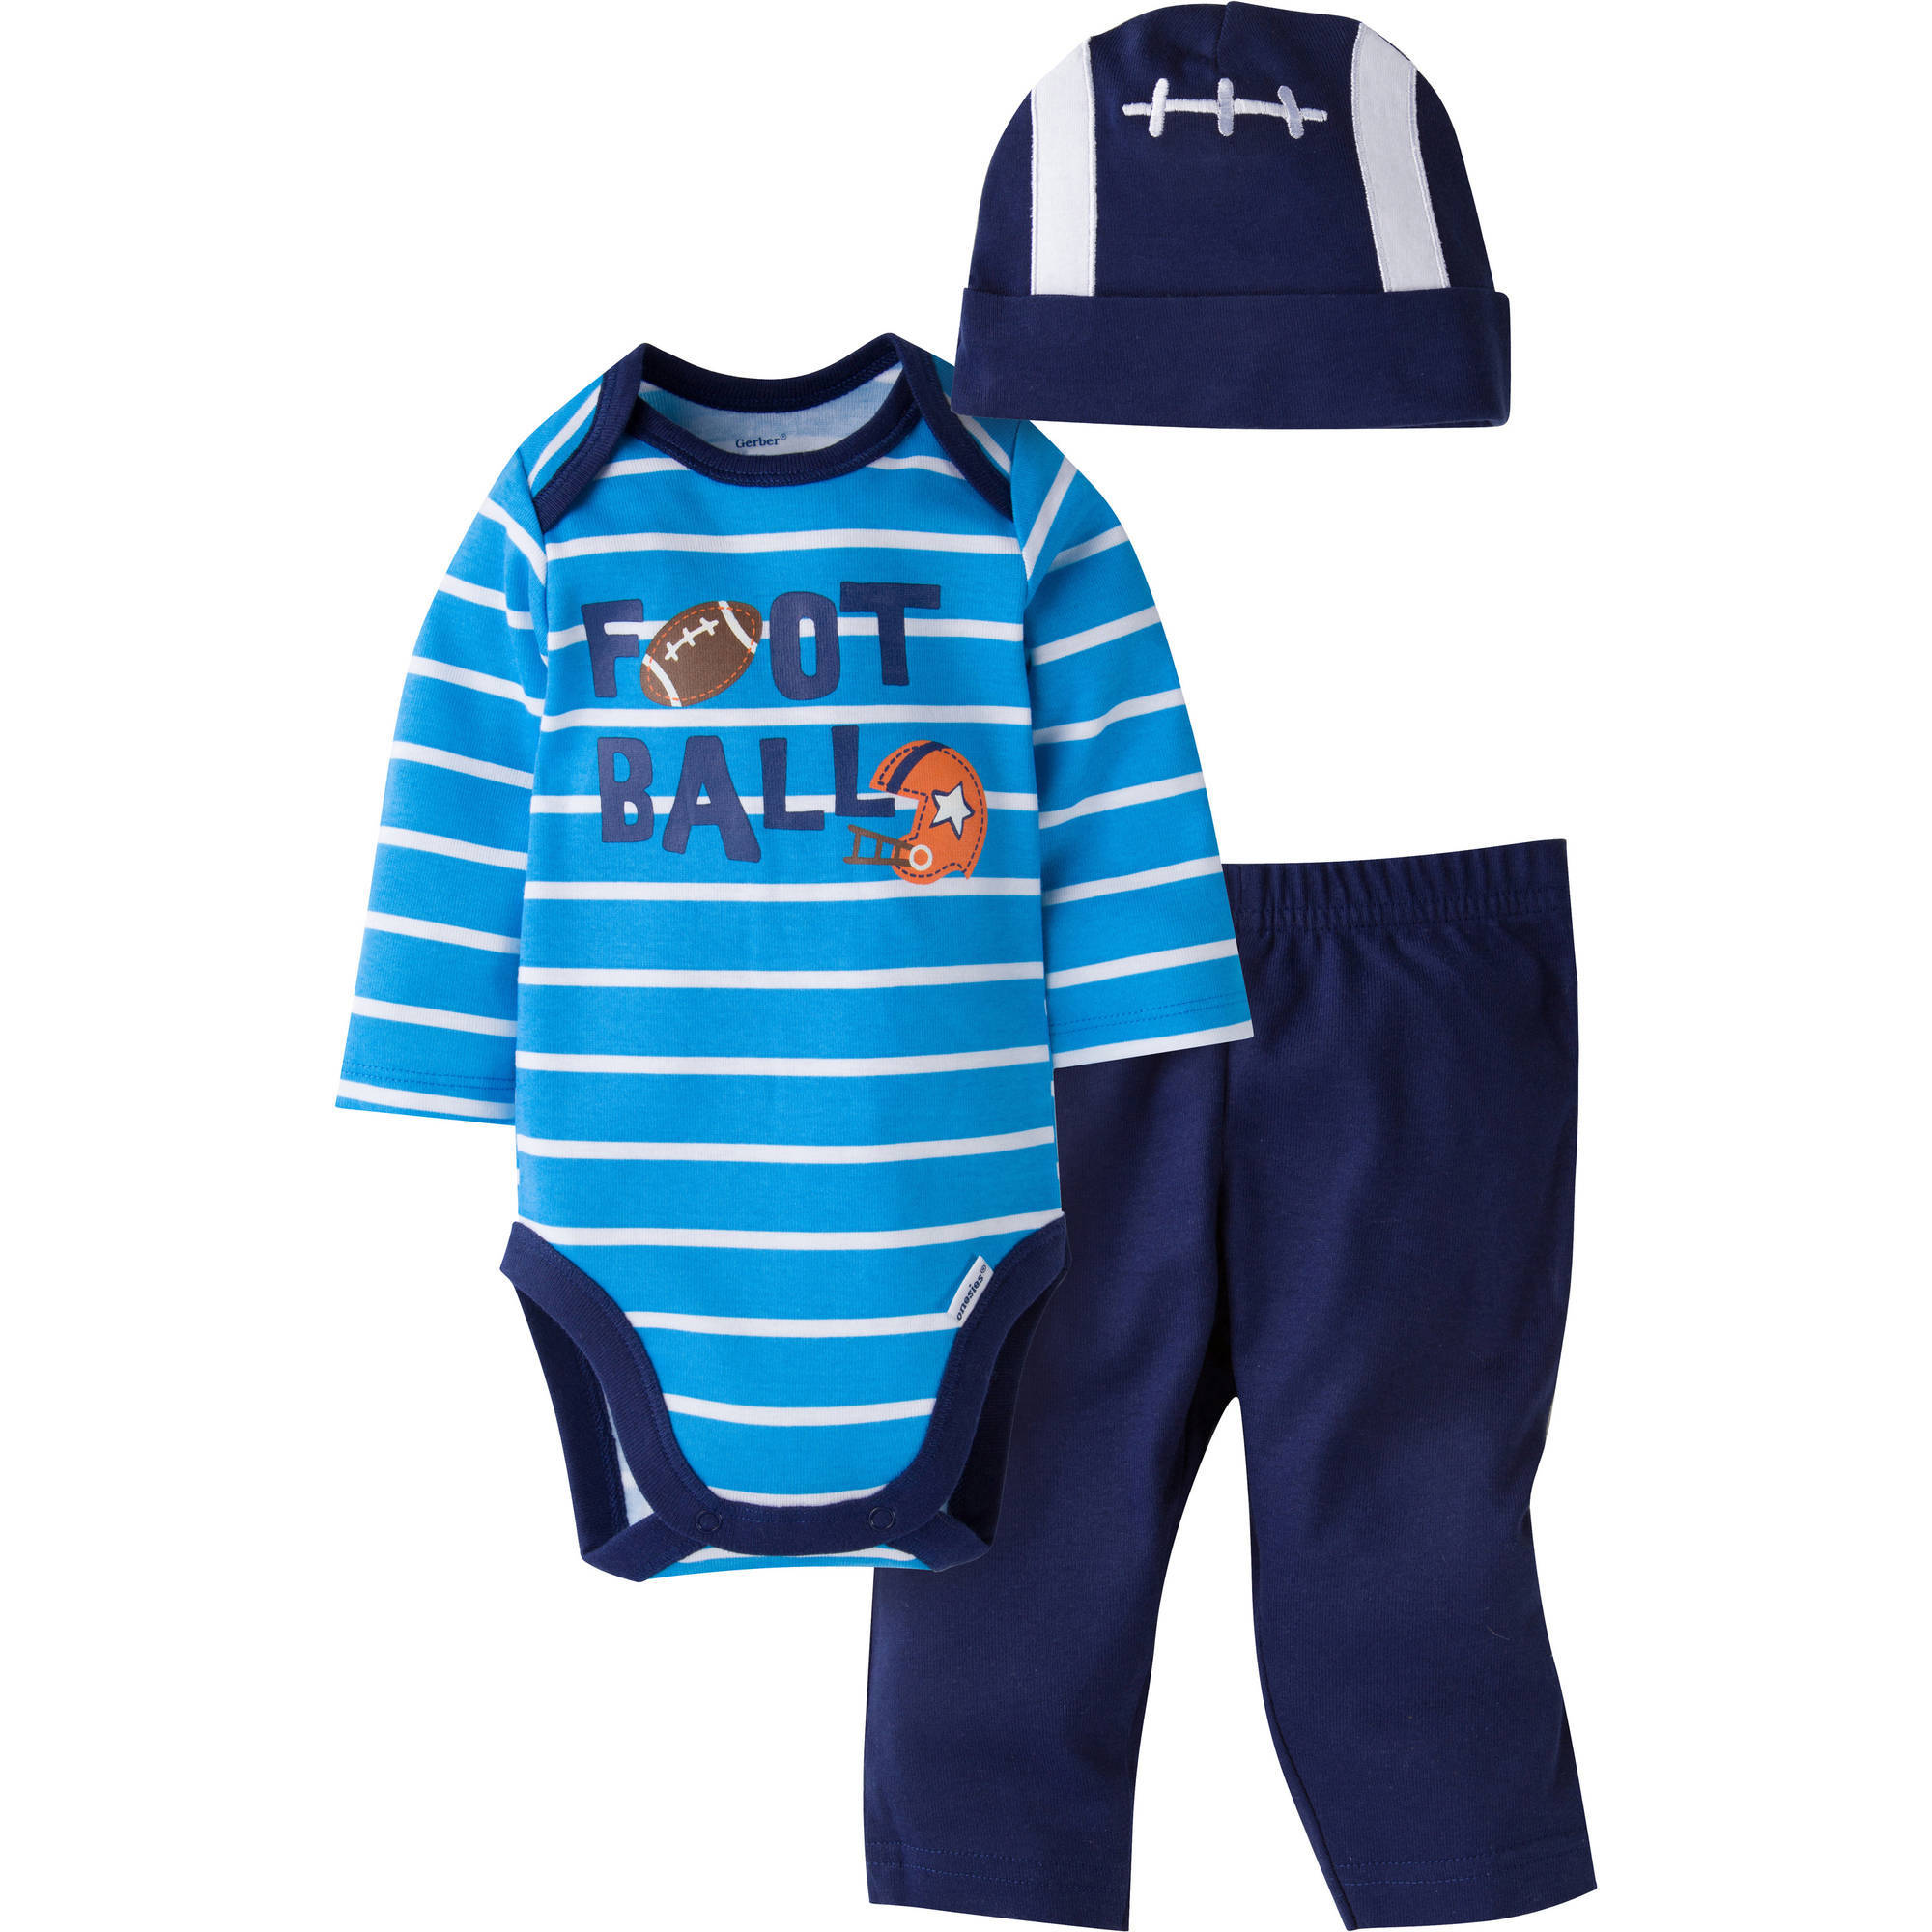 Gerber Newborn Baby Boy Bodysuit, Pant, and Cap Outfit Set, 3-Piece